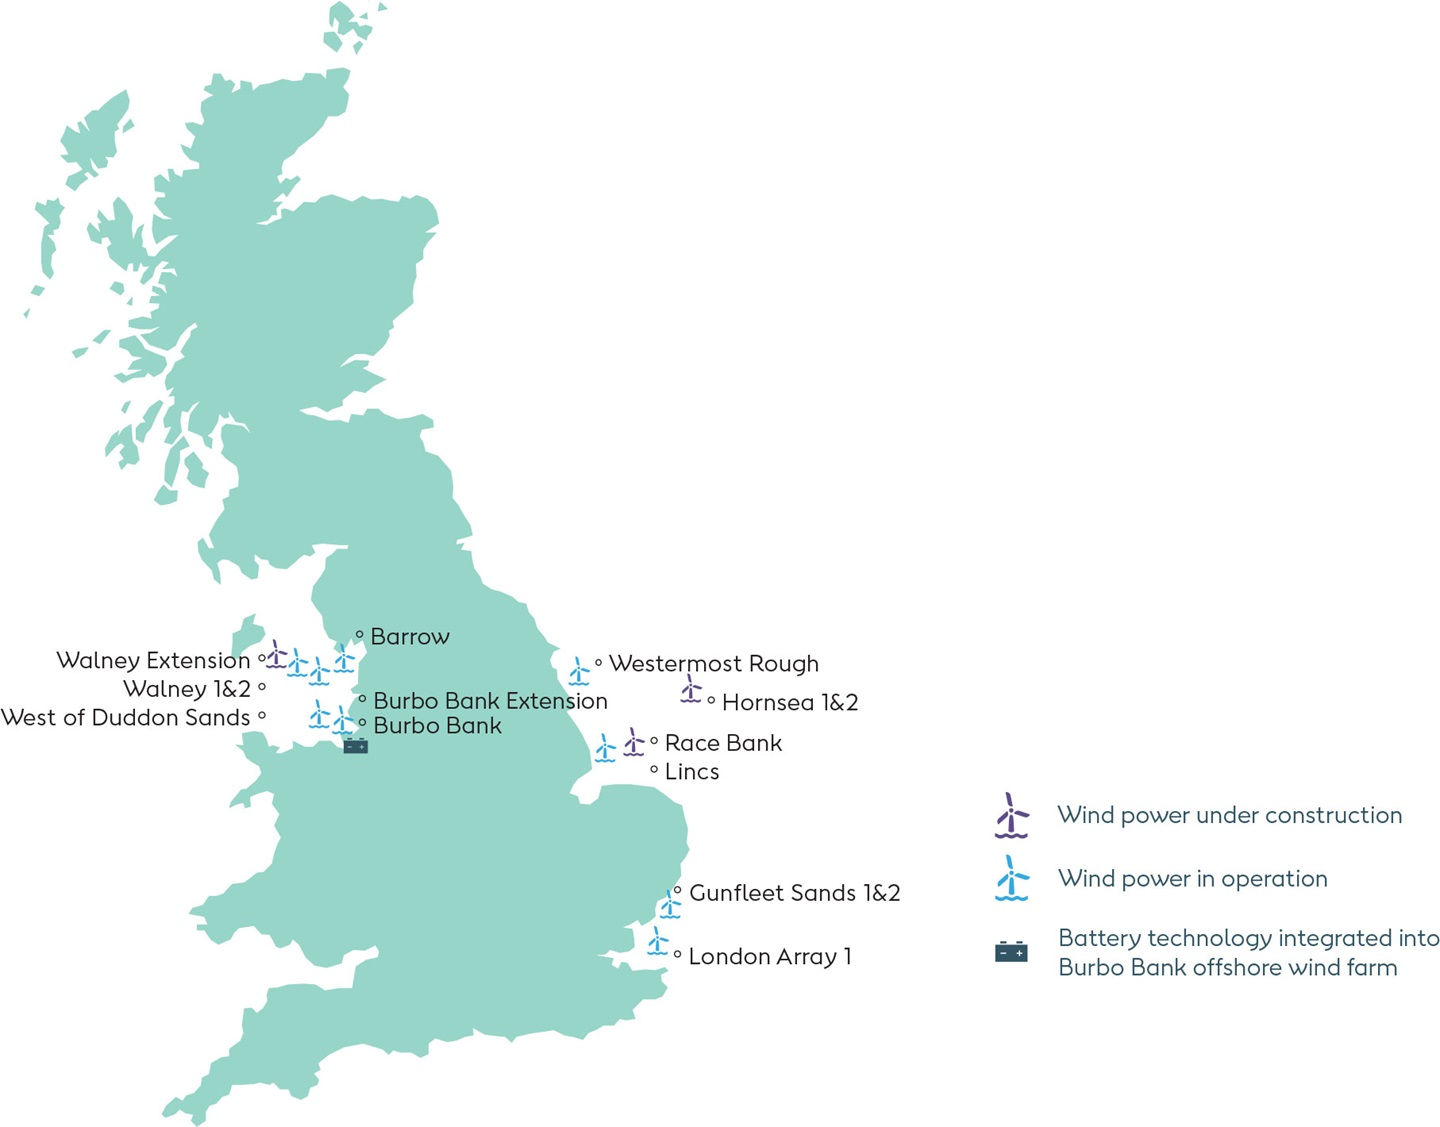 EDM Orsted UK Offshore wind map